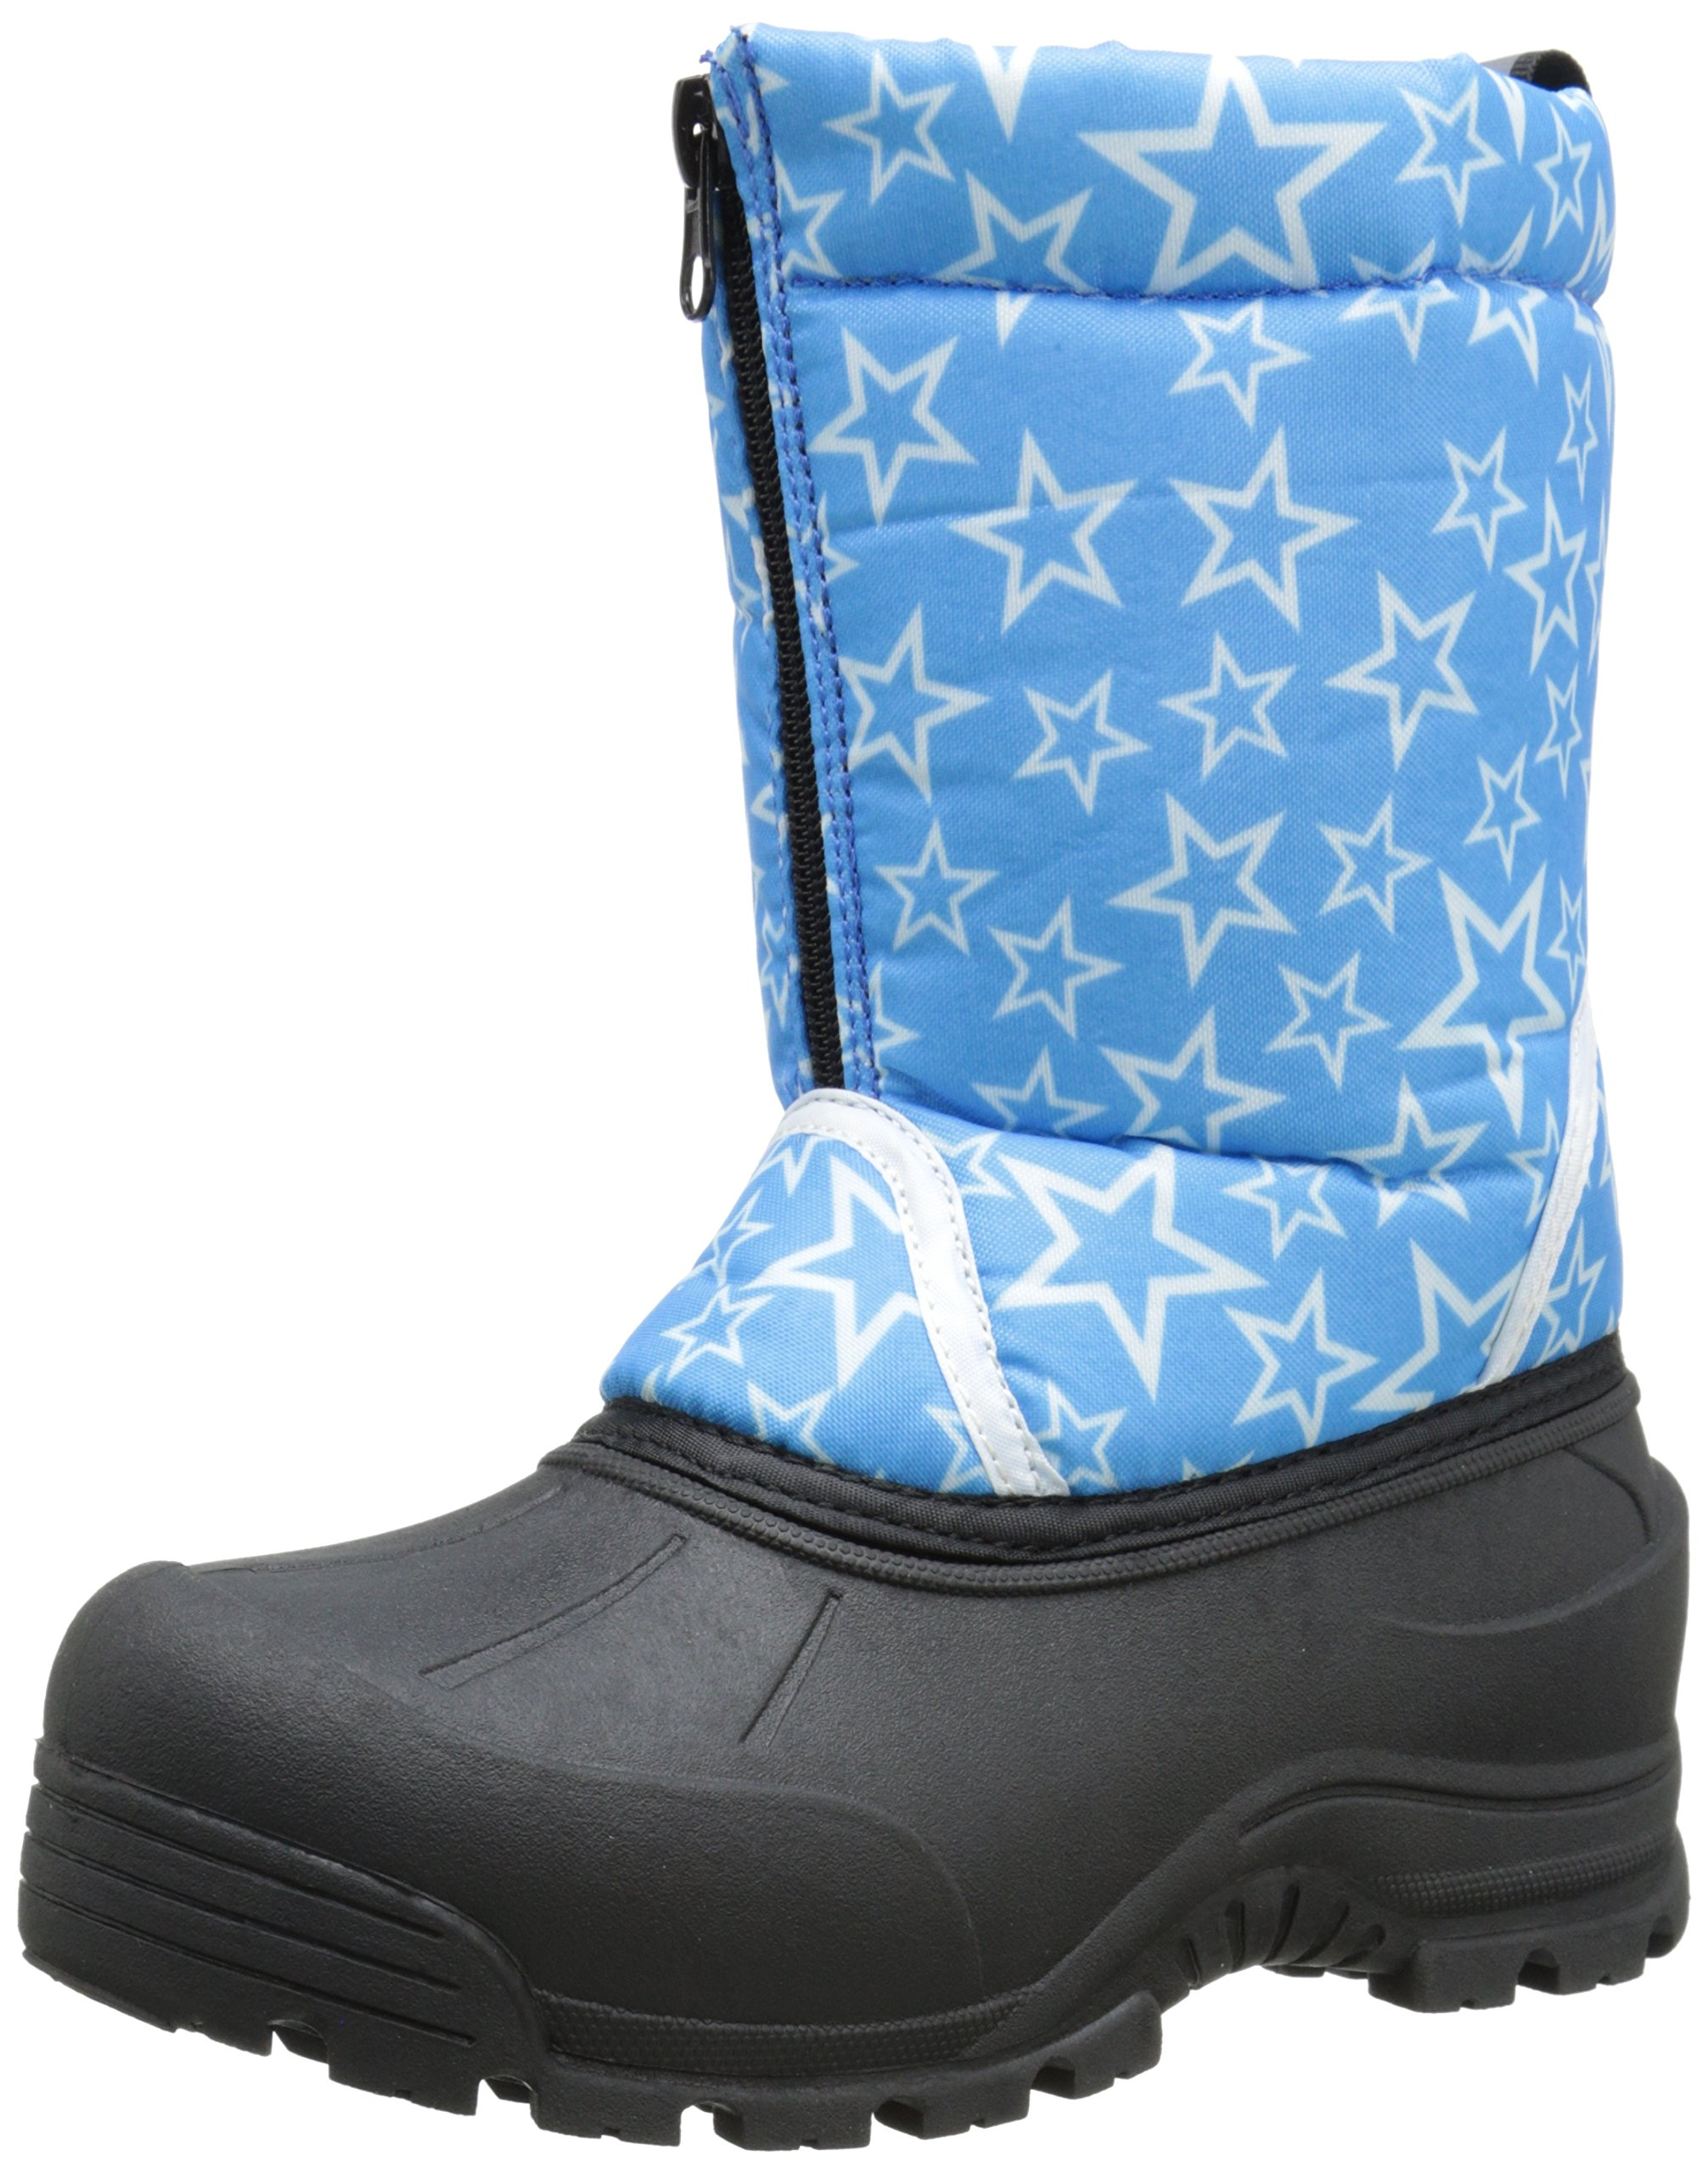 Northside Icicle Cold Weather Unisex Boot (Toddler/Little Kid/Big Kid), Turquoise/White, 2 M US Little Kid